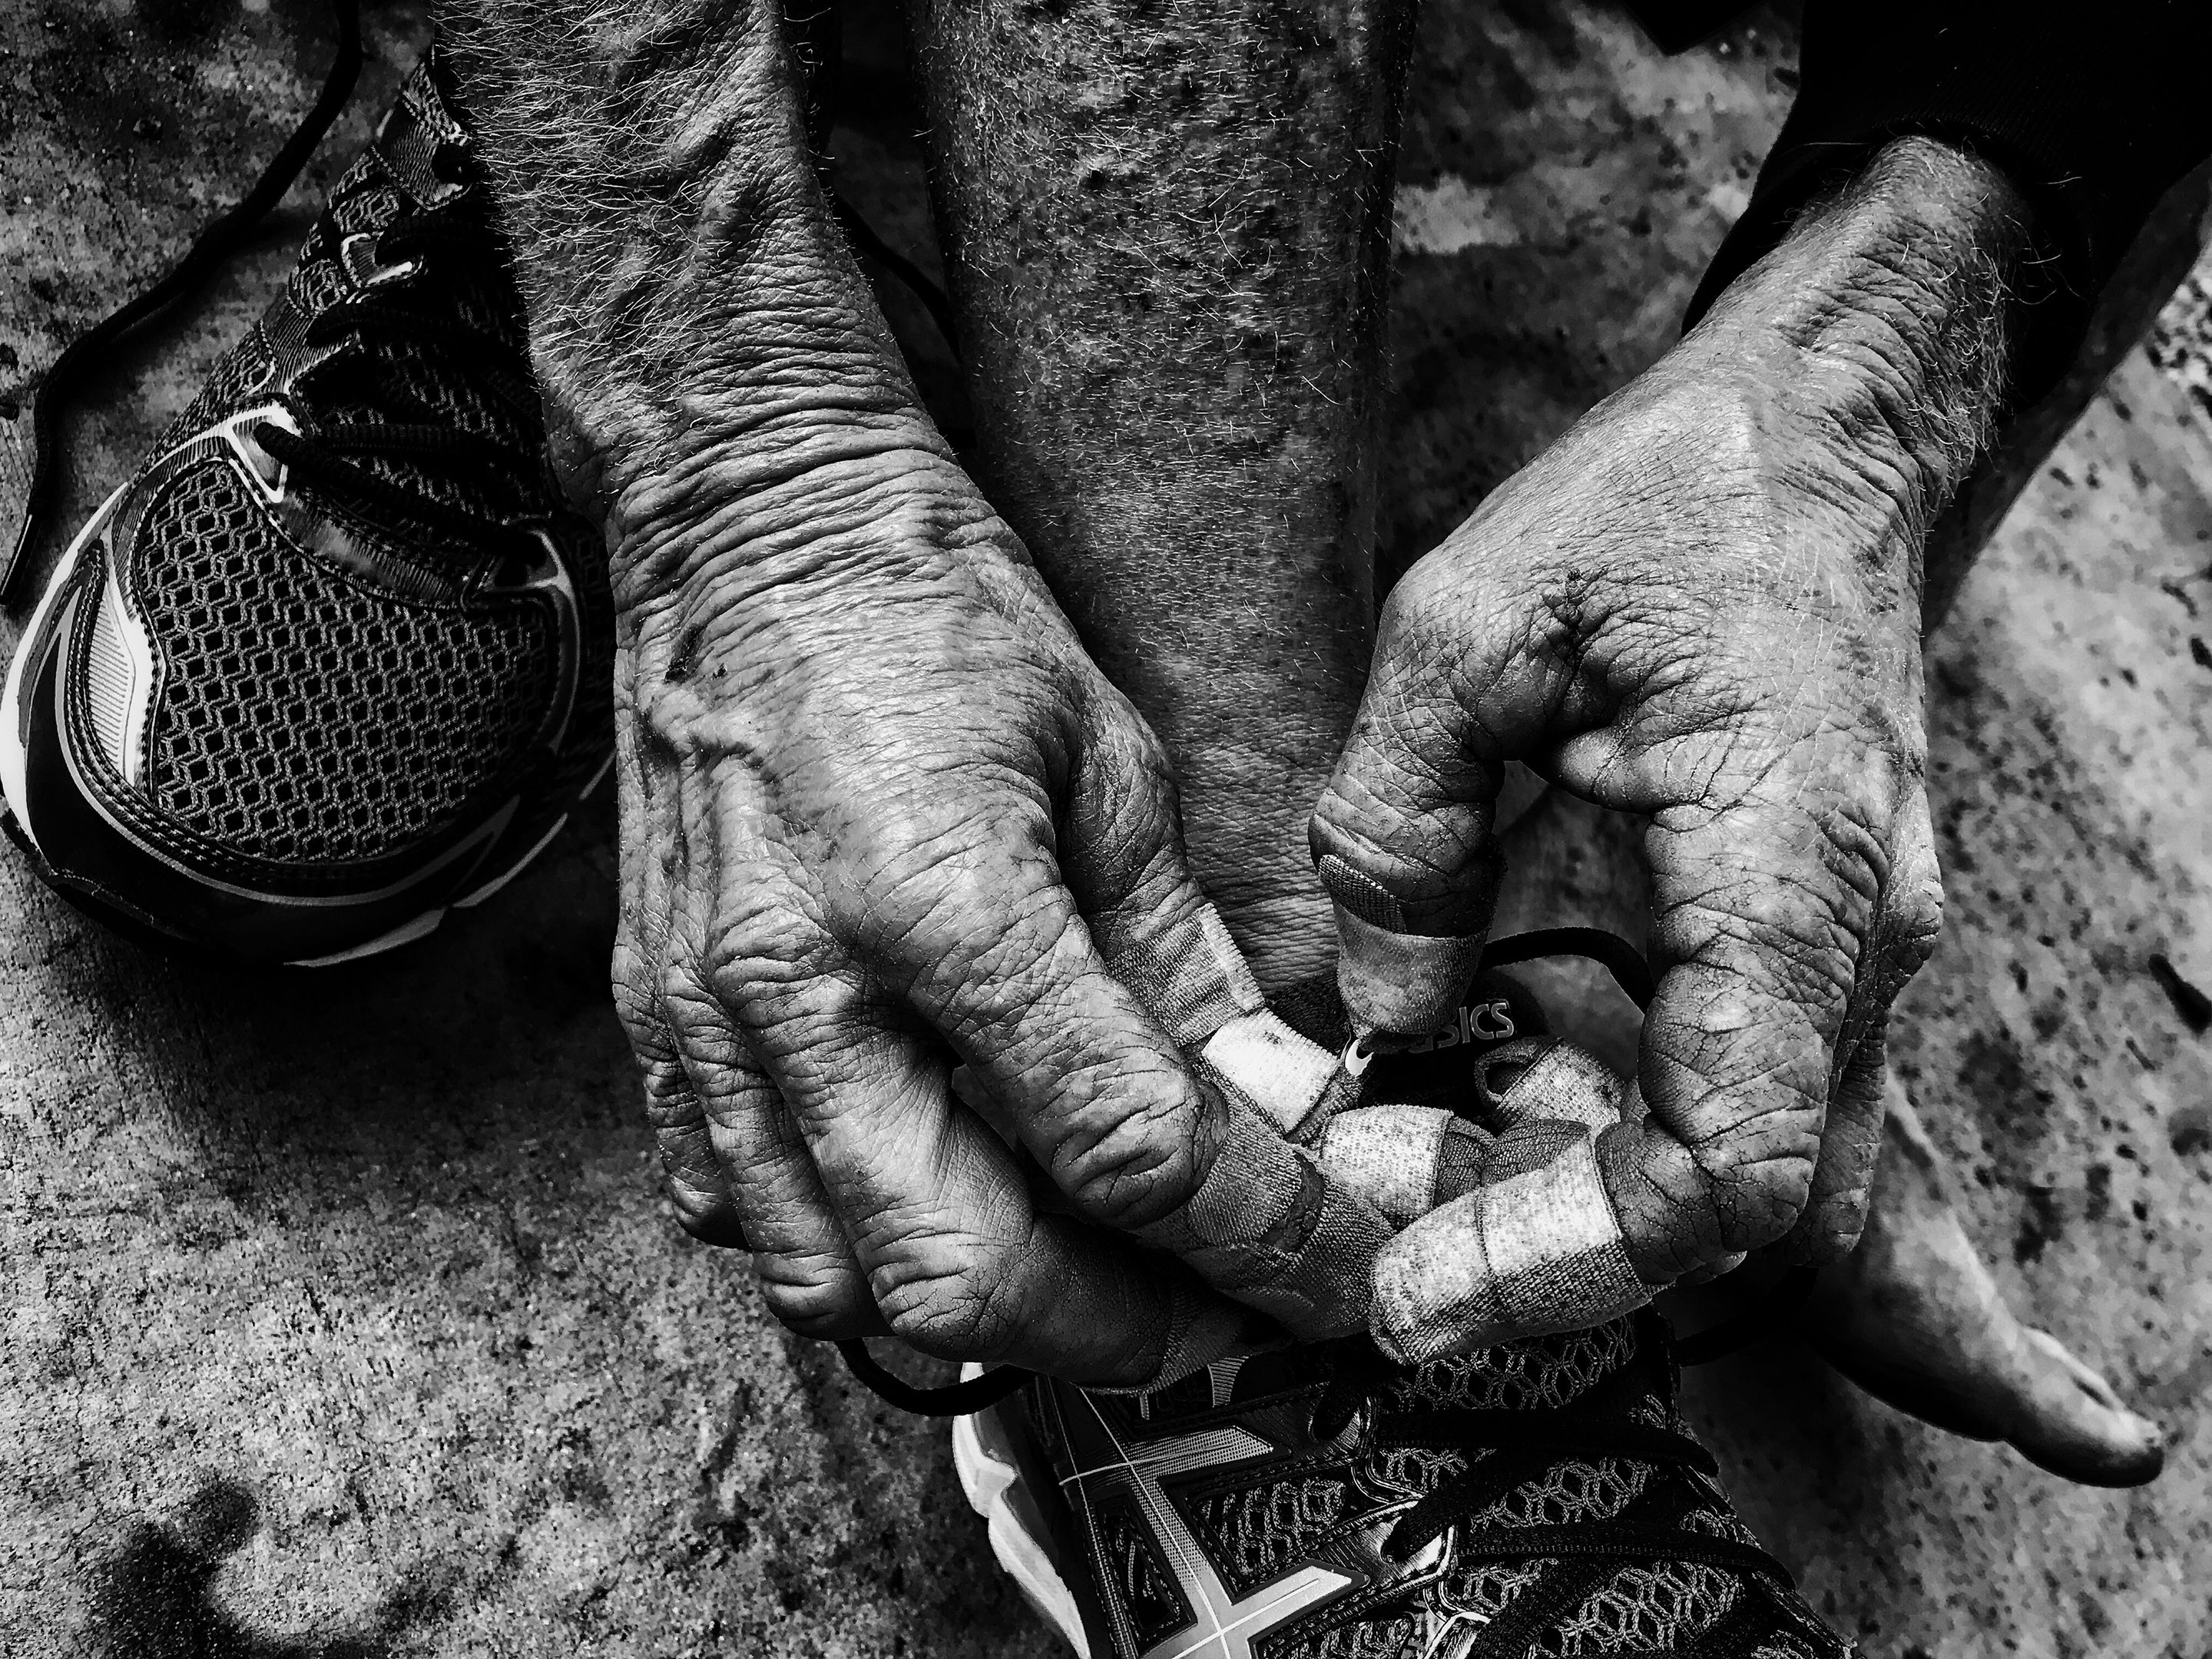 Lo Angele Homelessnes Crisi I A National Disgrace By The Time Editorial Bo Photography Photojournalism Documentary Csu Personal Statement Prompt 2017 2018